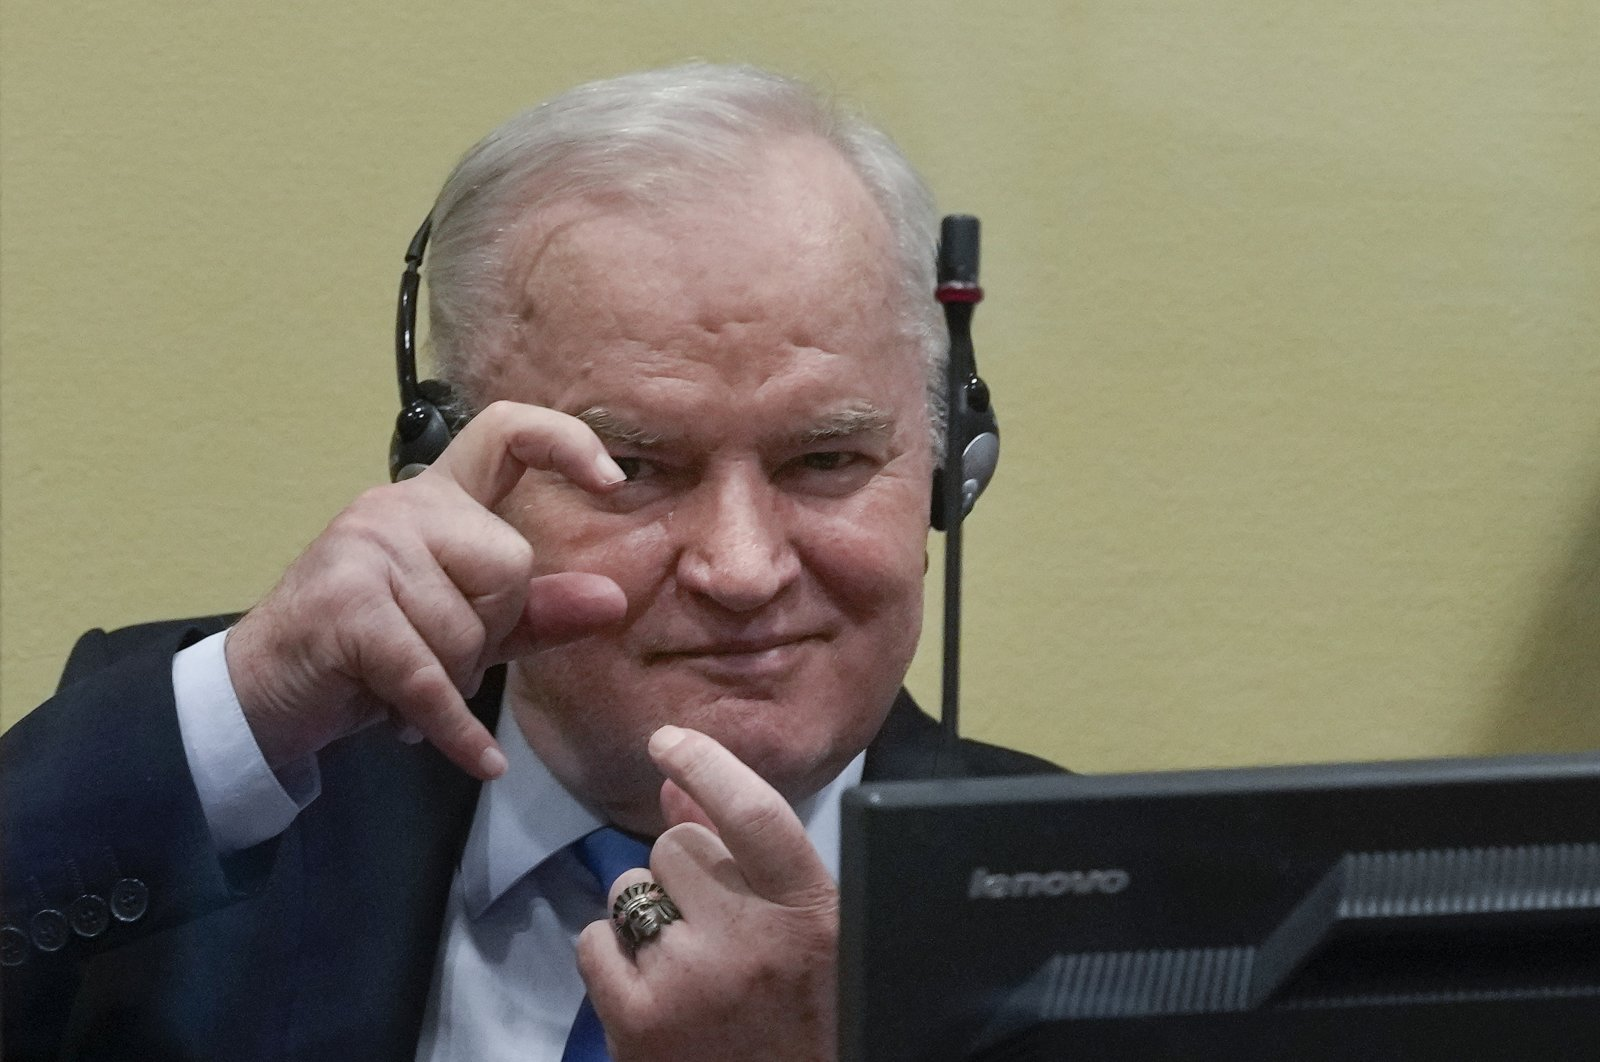 Former Bosnian Serb military chief Ratko Mladic imitates taking pictures as he sits in the court room in The Hague, Netherlands, June 8, 2021. (AP Photo)